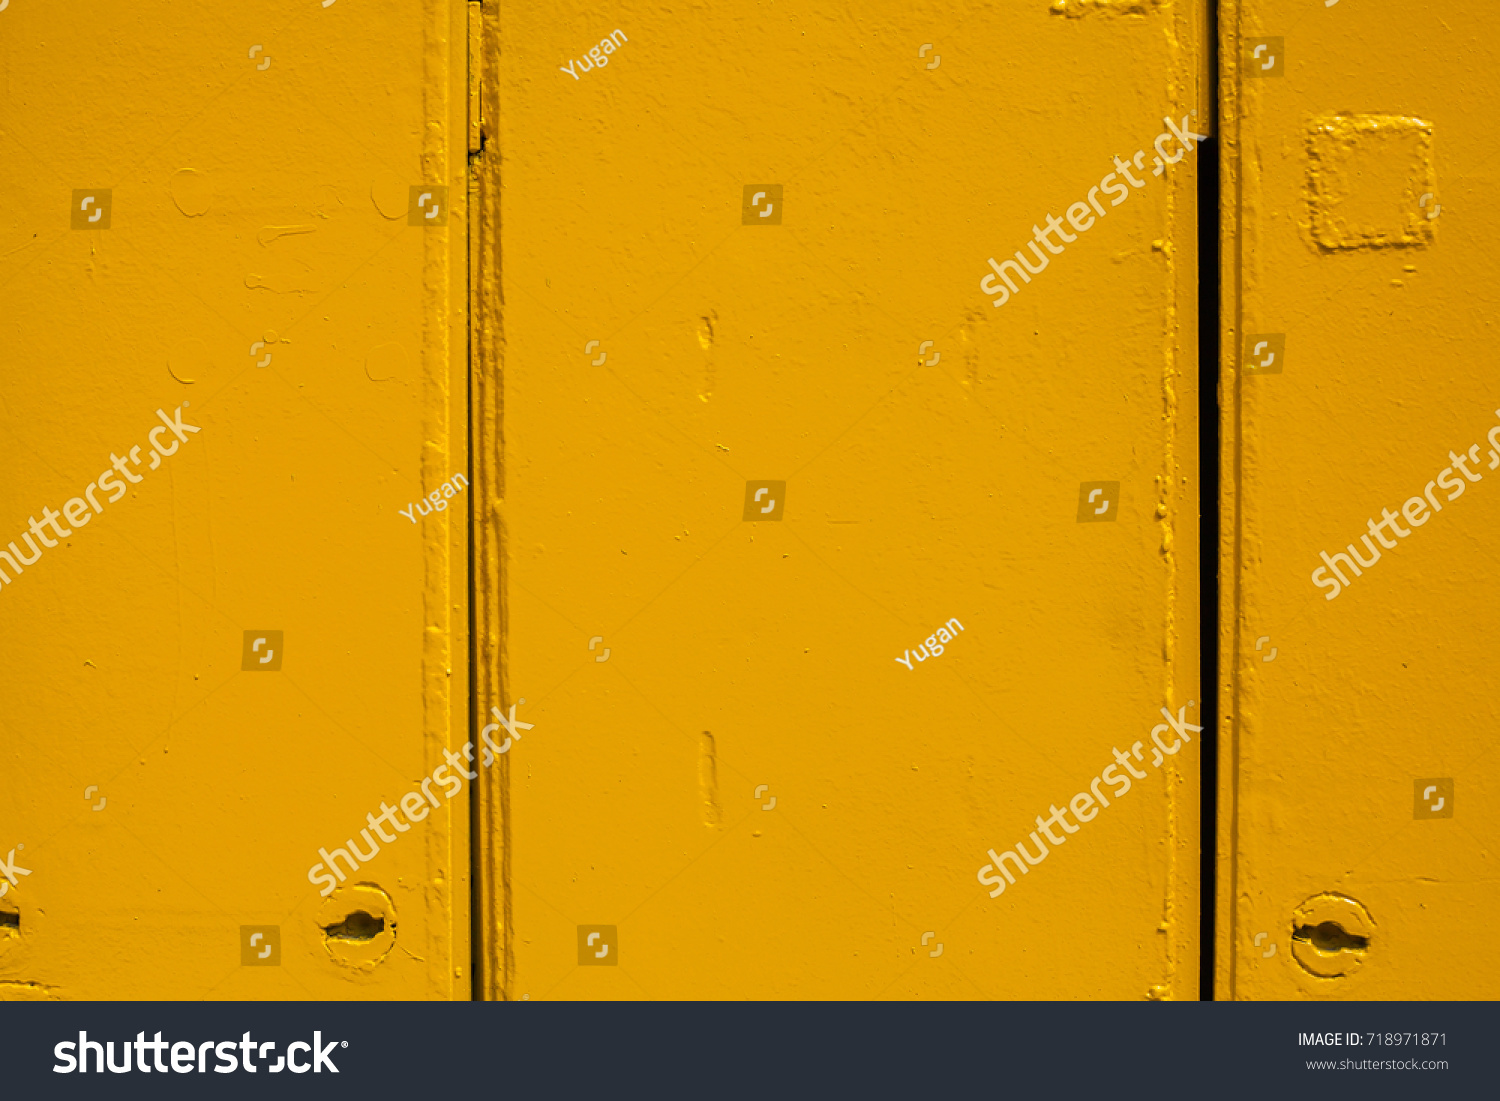 Bright red background. Paint smudges on the surface. Painted metal surface. The surface of the train as a background element. Metal painted yellow. Yellow metal sheets. Old painted surface